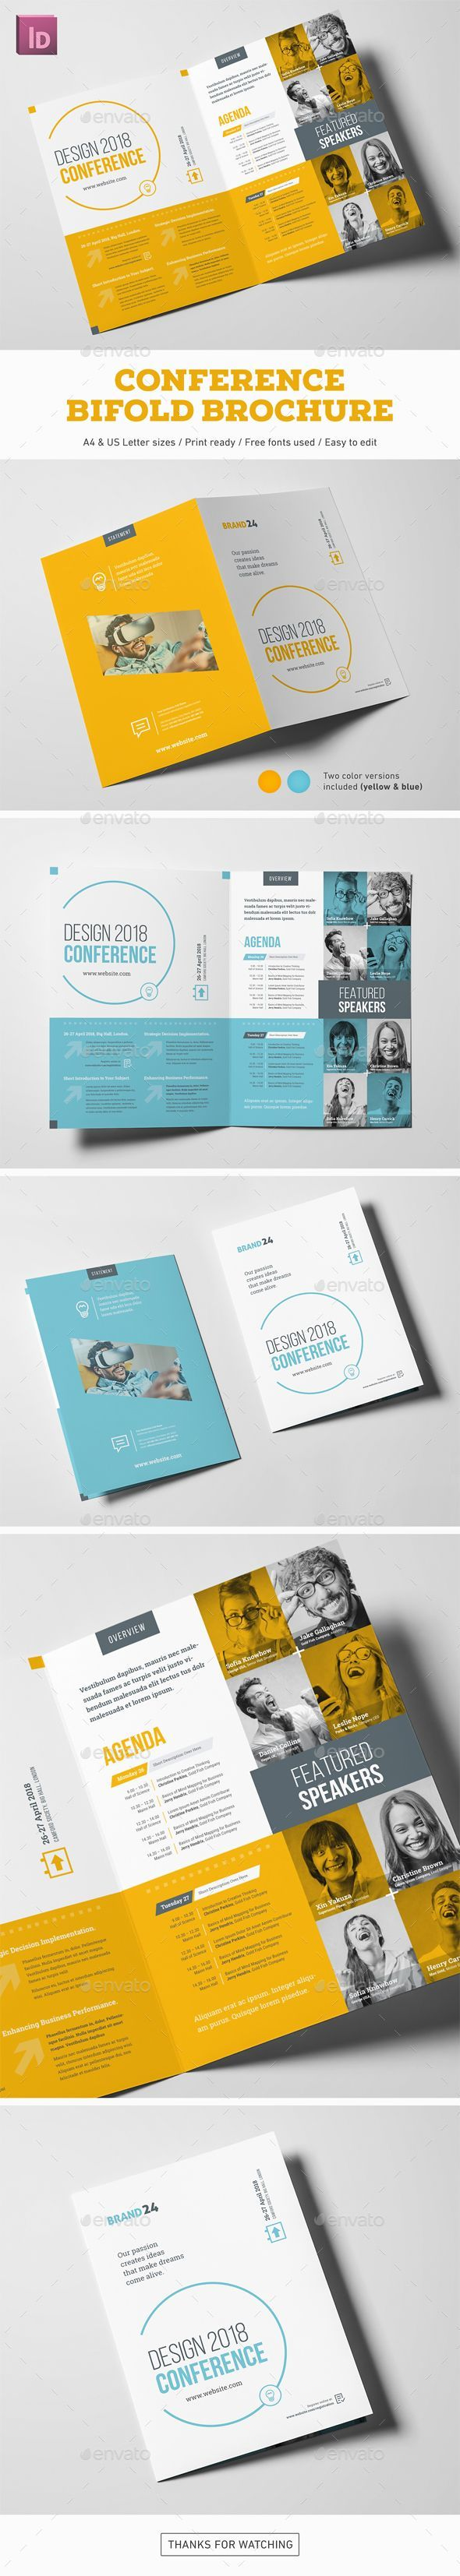 Agenda Sample Format Impressive Image Result For Corporate Branded Agenda Template  Dance For A .